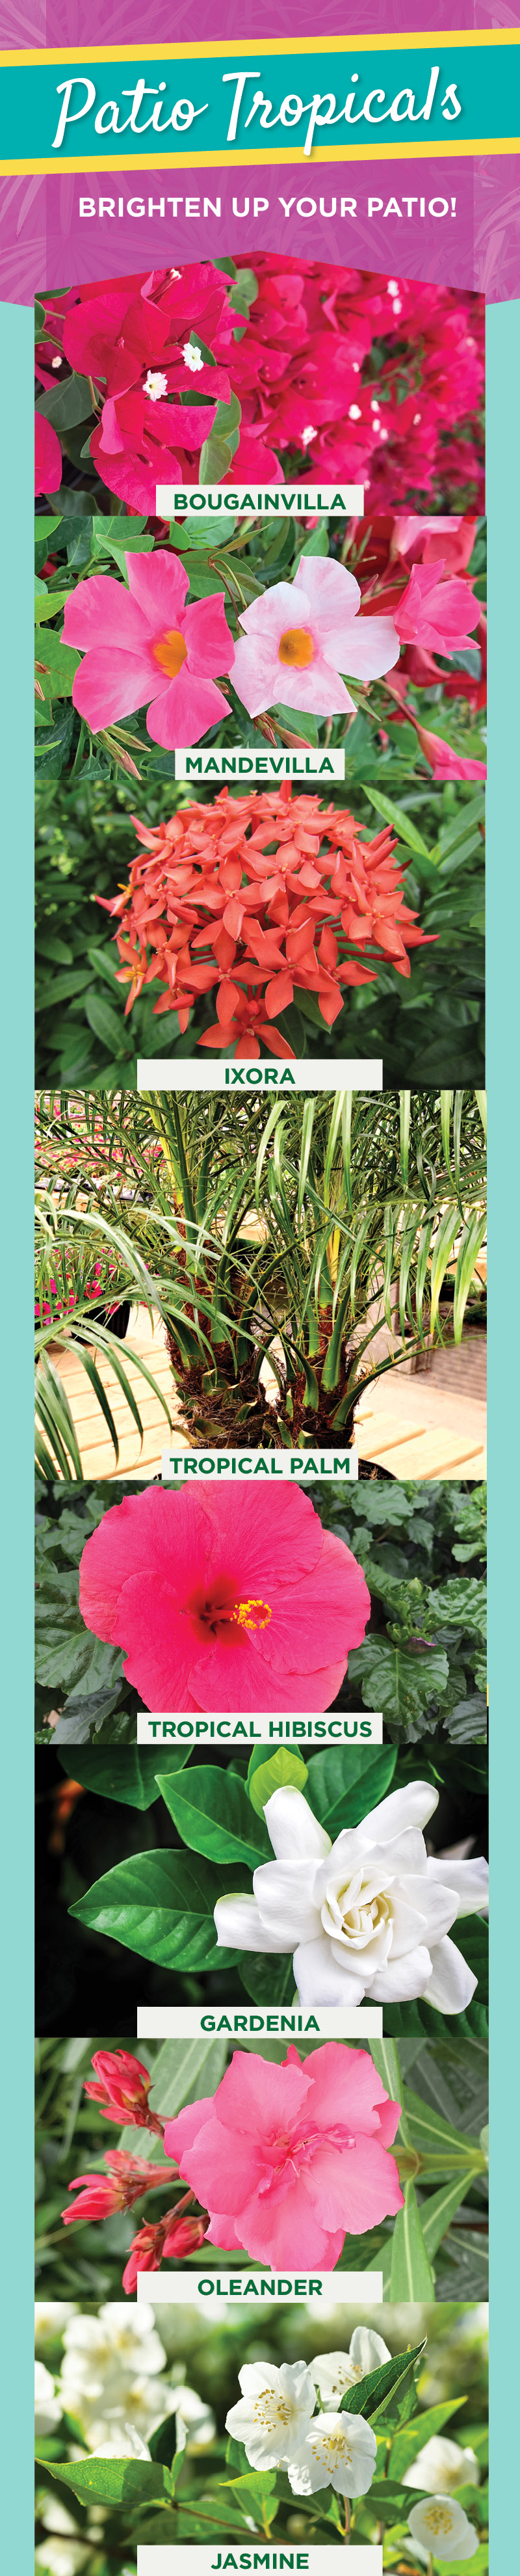 Patio Tropicals